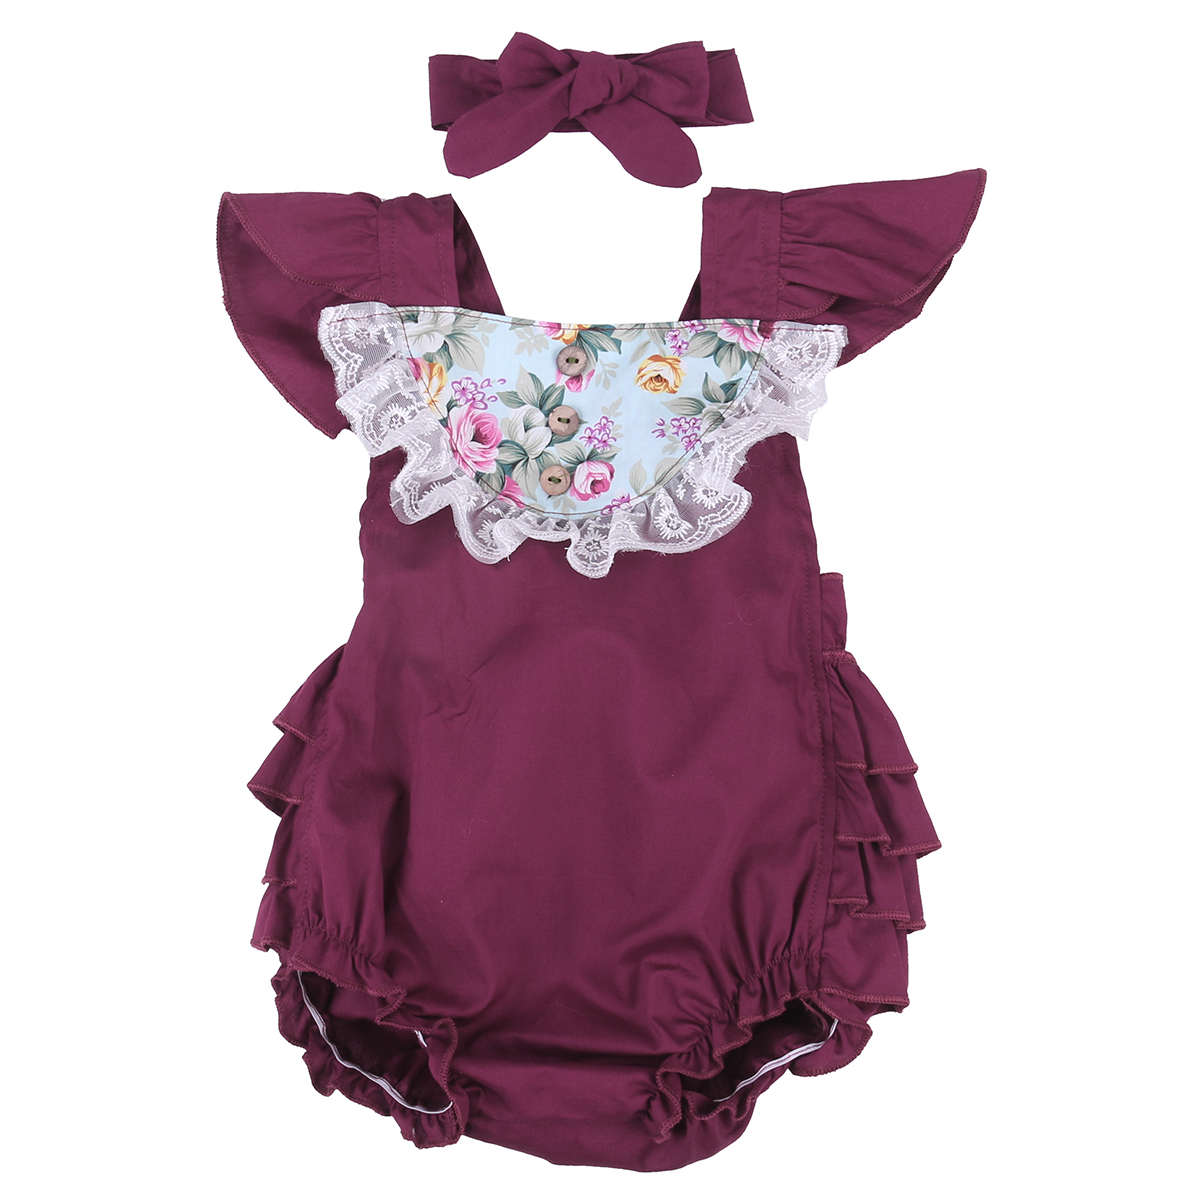 2017 Summer Baby Clothes Floral Ruffles Romper Sunsuit Fly Sleeve Tutu Tulle+Headband Outfit Clothing 2017 floral baby romper newborn baby girl clothes ruffles sleeve bodysuit headband 2pcs outfit bebek giyim sunsuit 0 24m